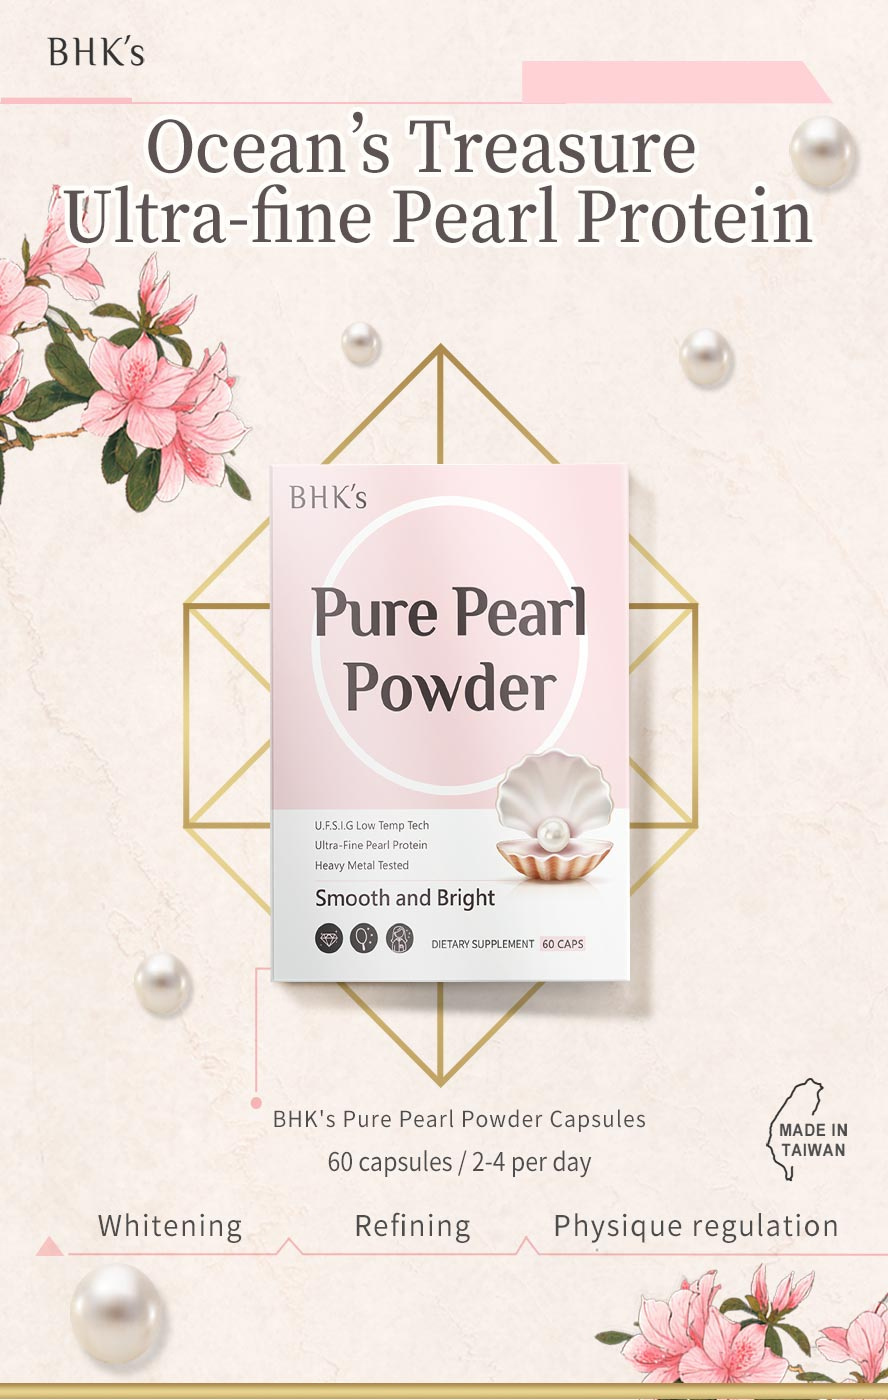 Pearl powder is a skincare supplement that promotes bouncier skin, reduces pore size, lightens skin tone, and improves skin texture.